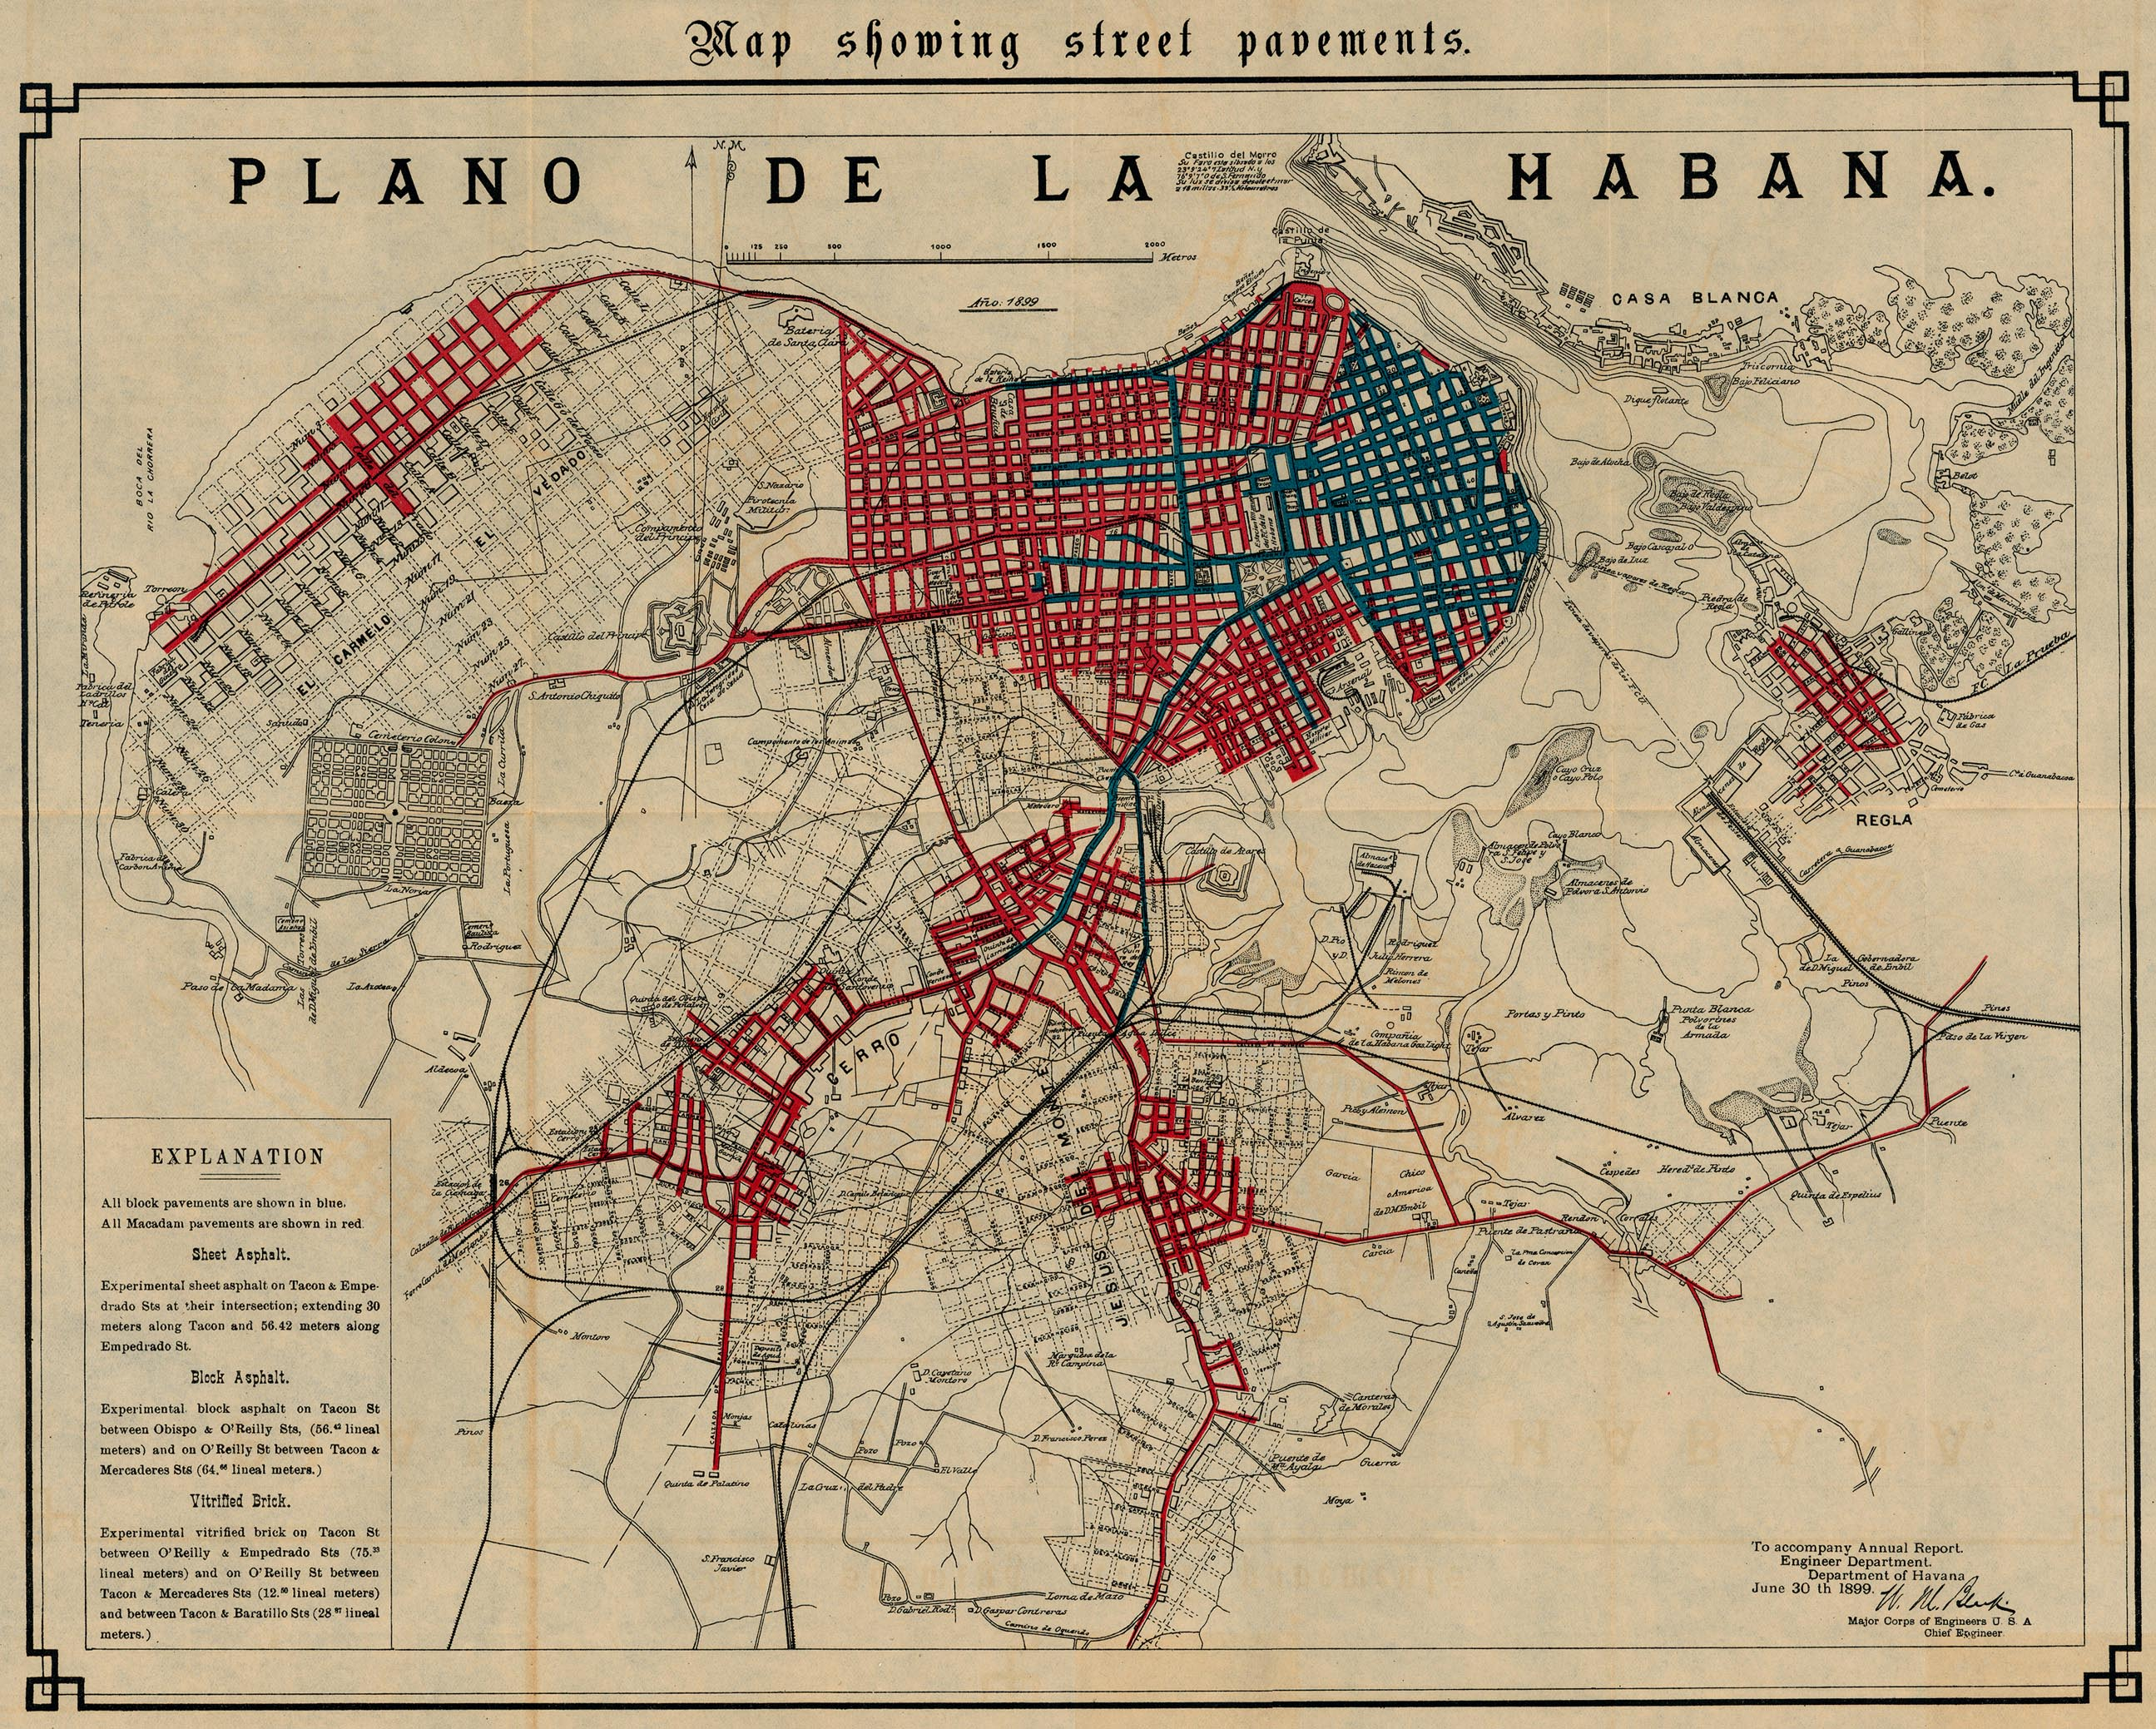 Havana Map Showing Street Pavements, Cuba 1899